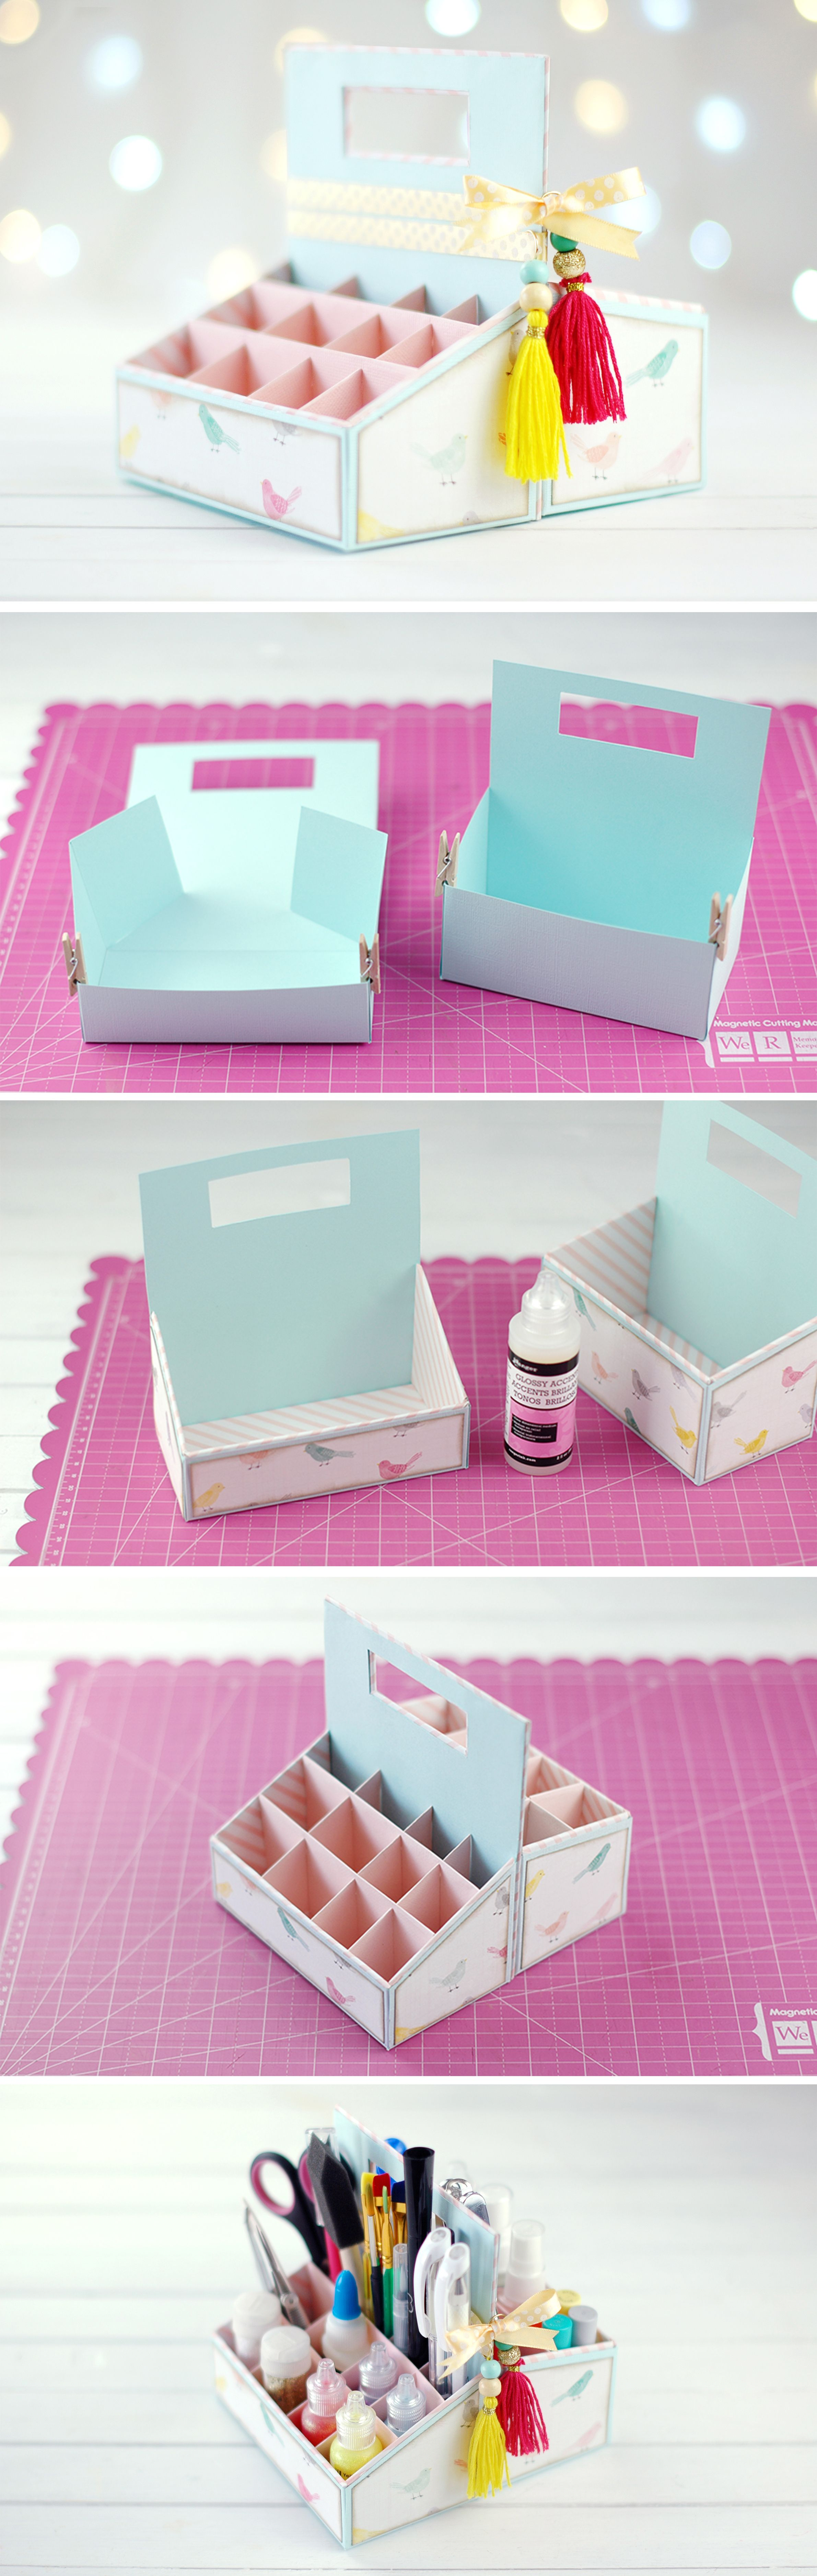 Box Organizer Tutorial